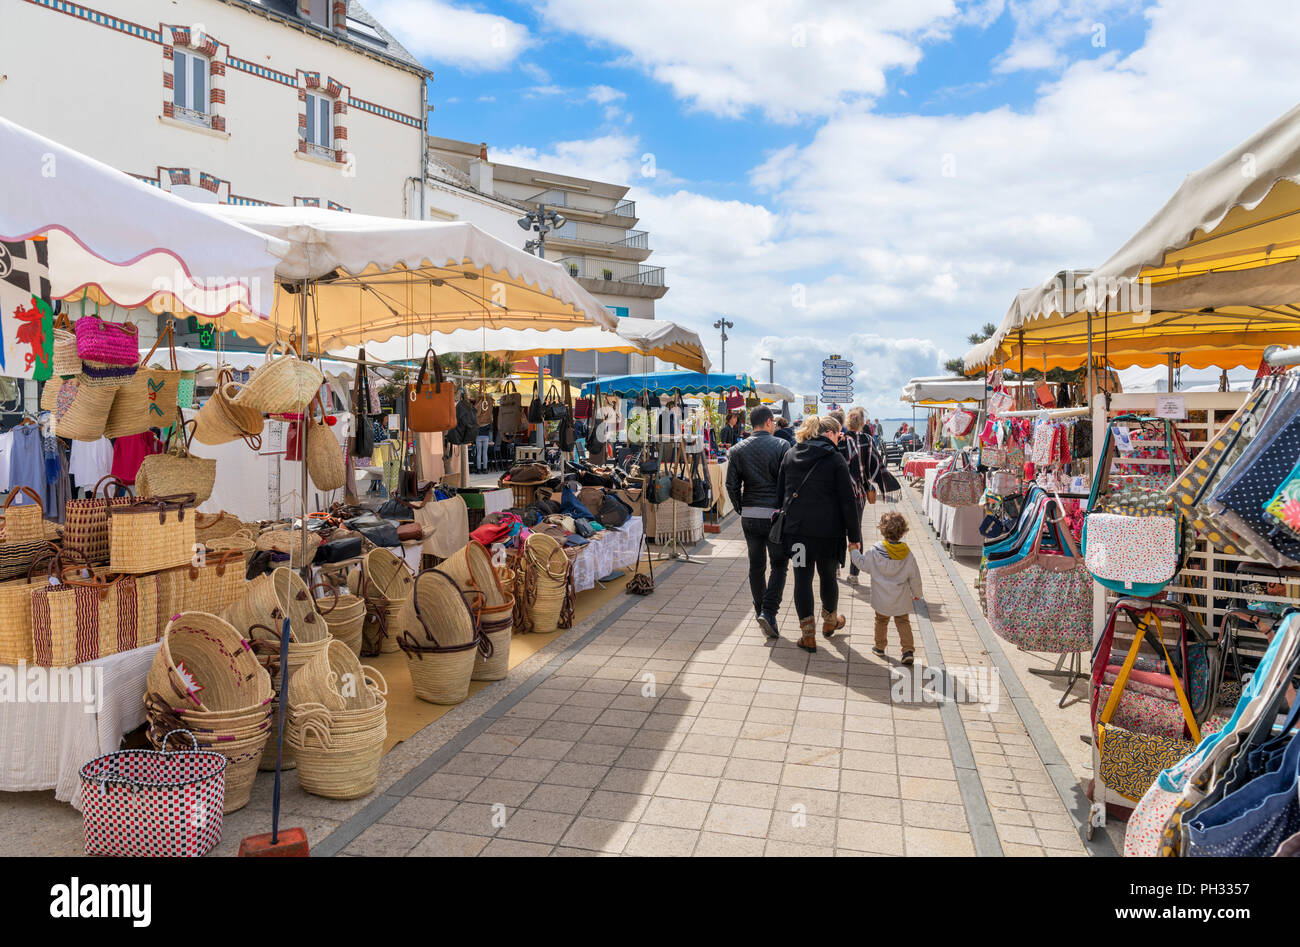 Market in Quiberon, Brittany, France - Stock Image